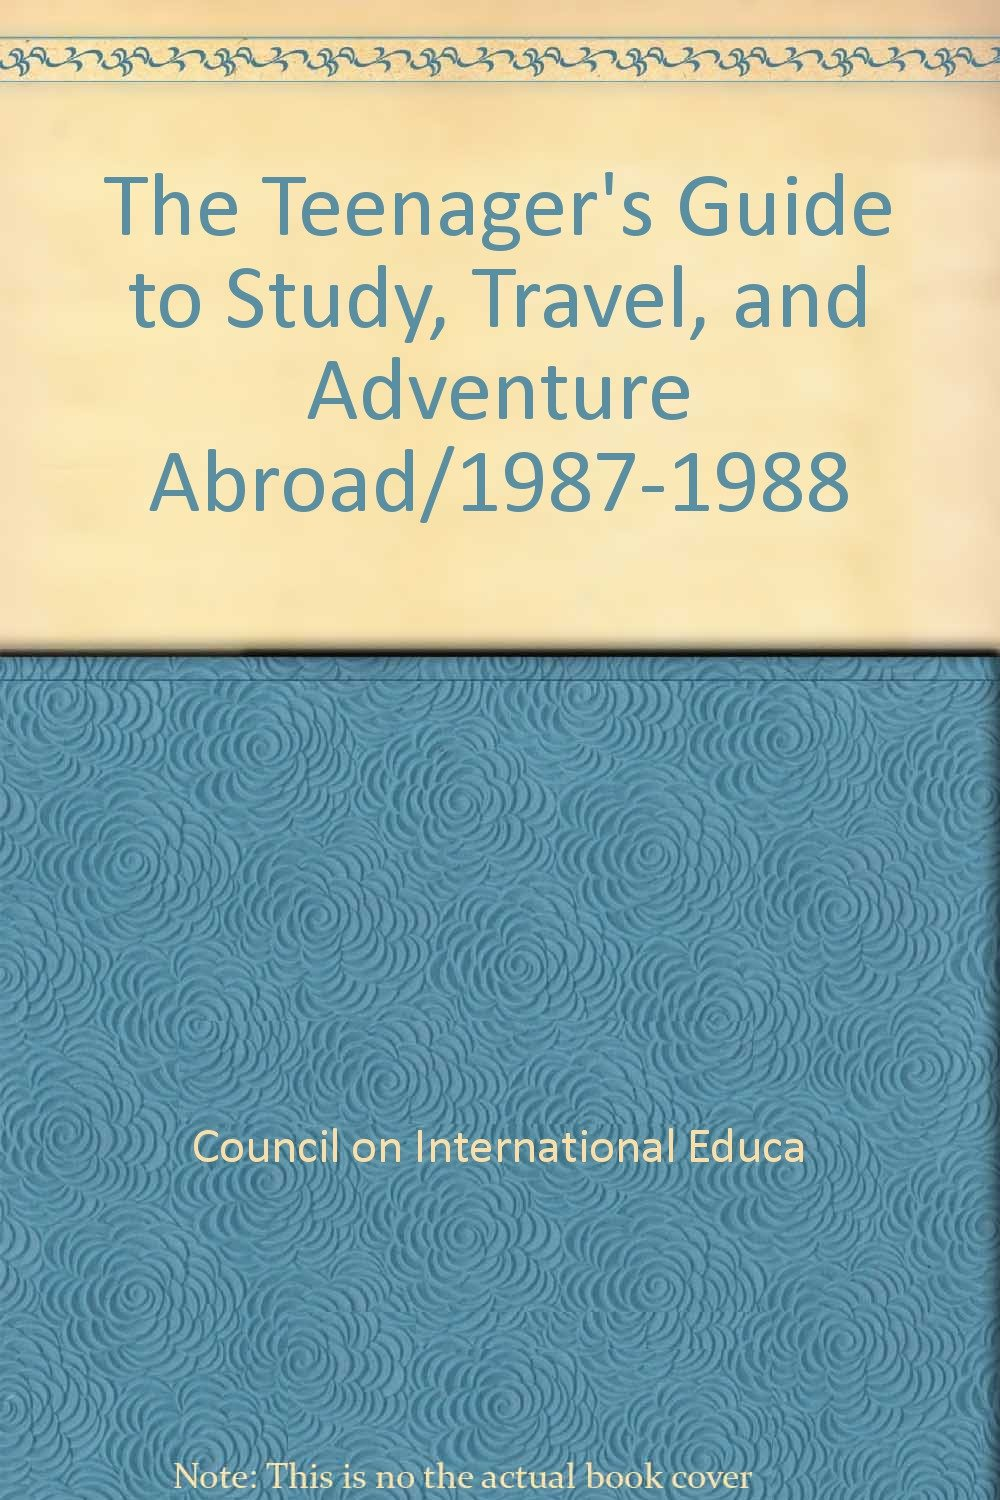 the-teenager-s-guide-to-study-travel-and-adventure-abroad-1987-1988